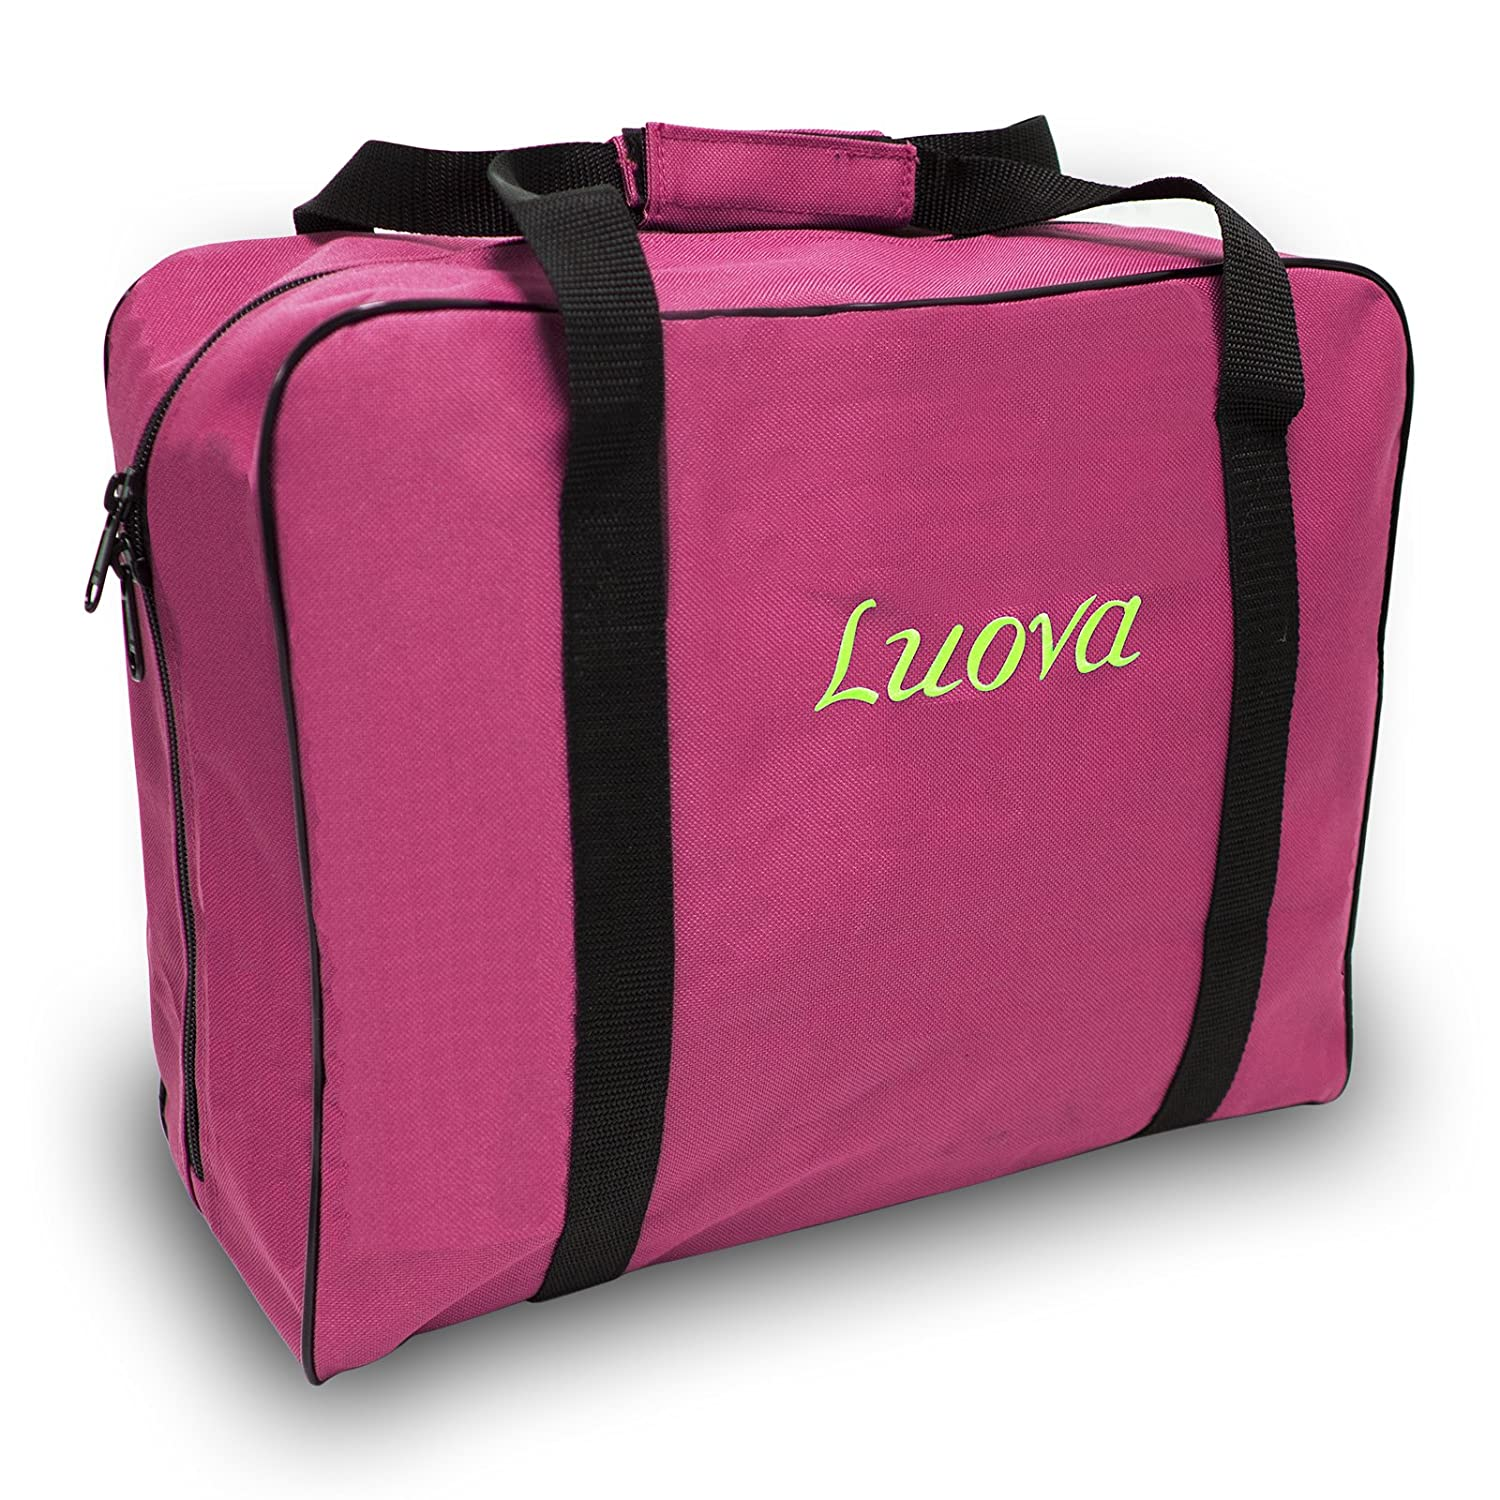 "Luova 14"" Sewing Tote For 3/4 Size Machines In Pink 4336998366"